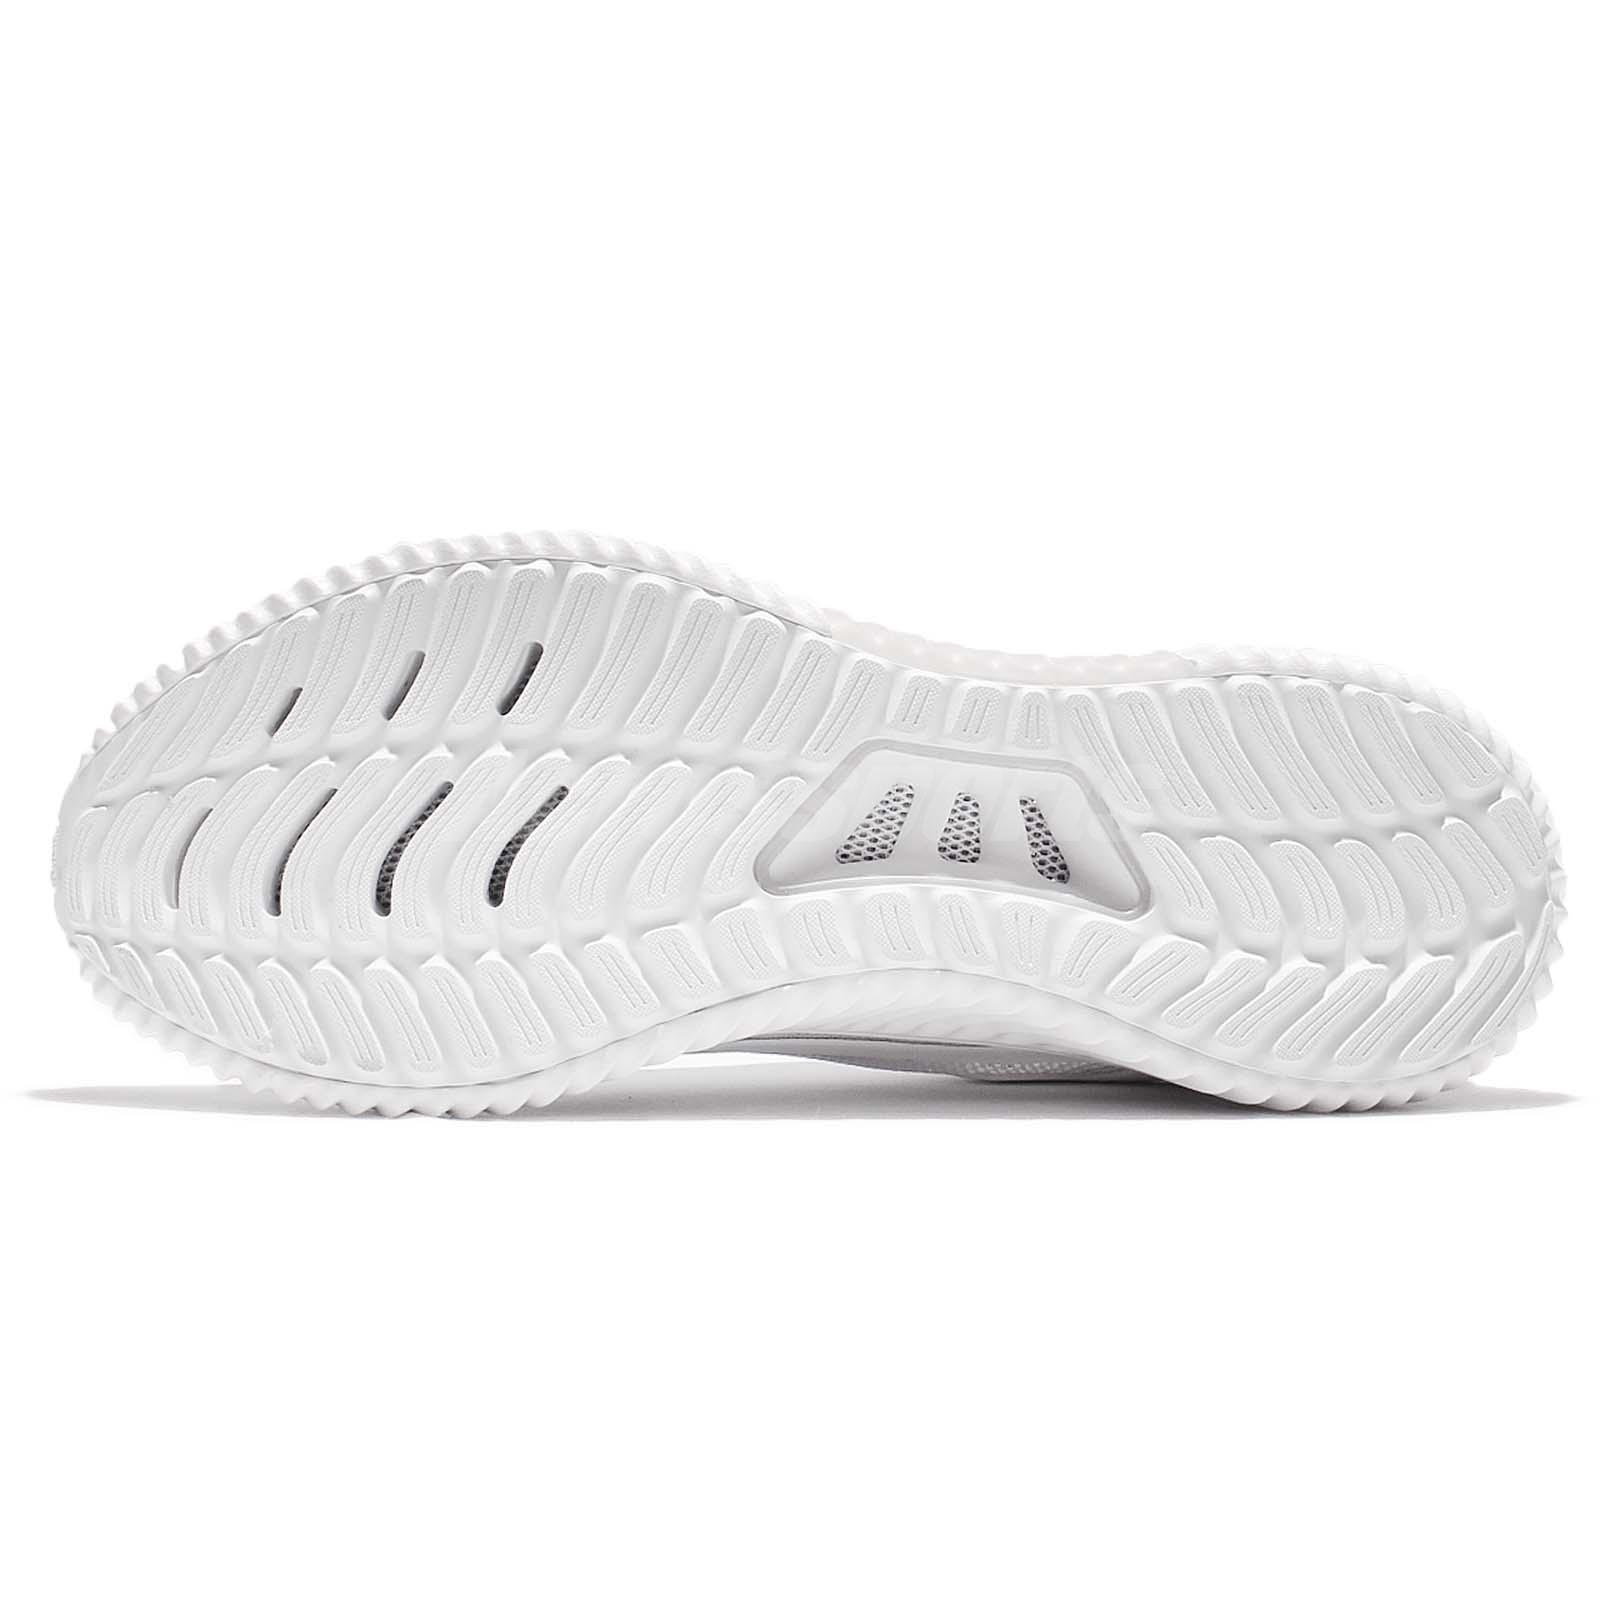 adidas running shoes size chart